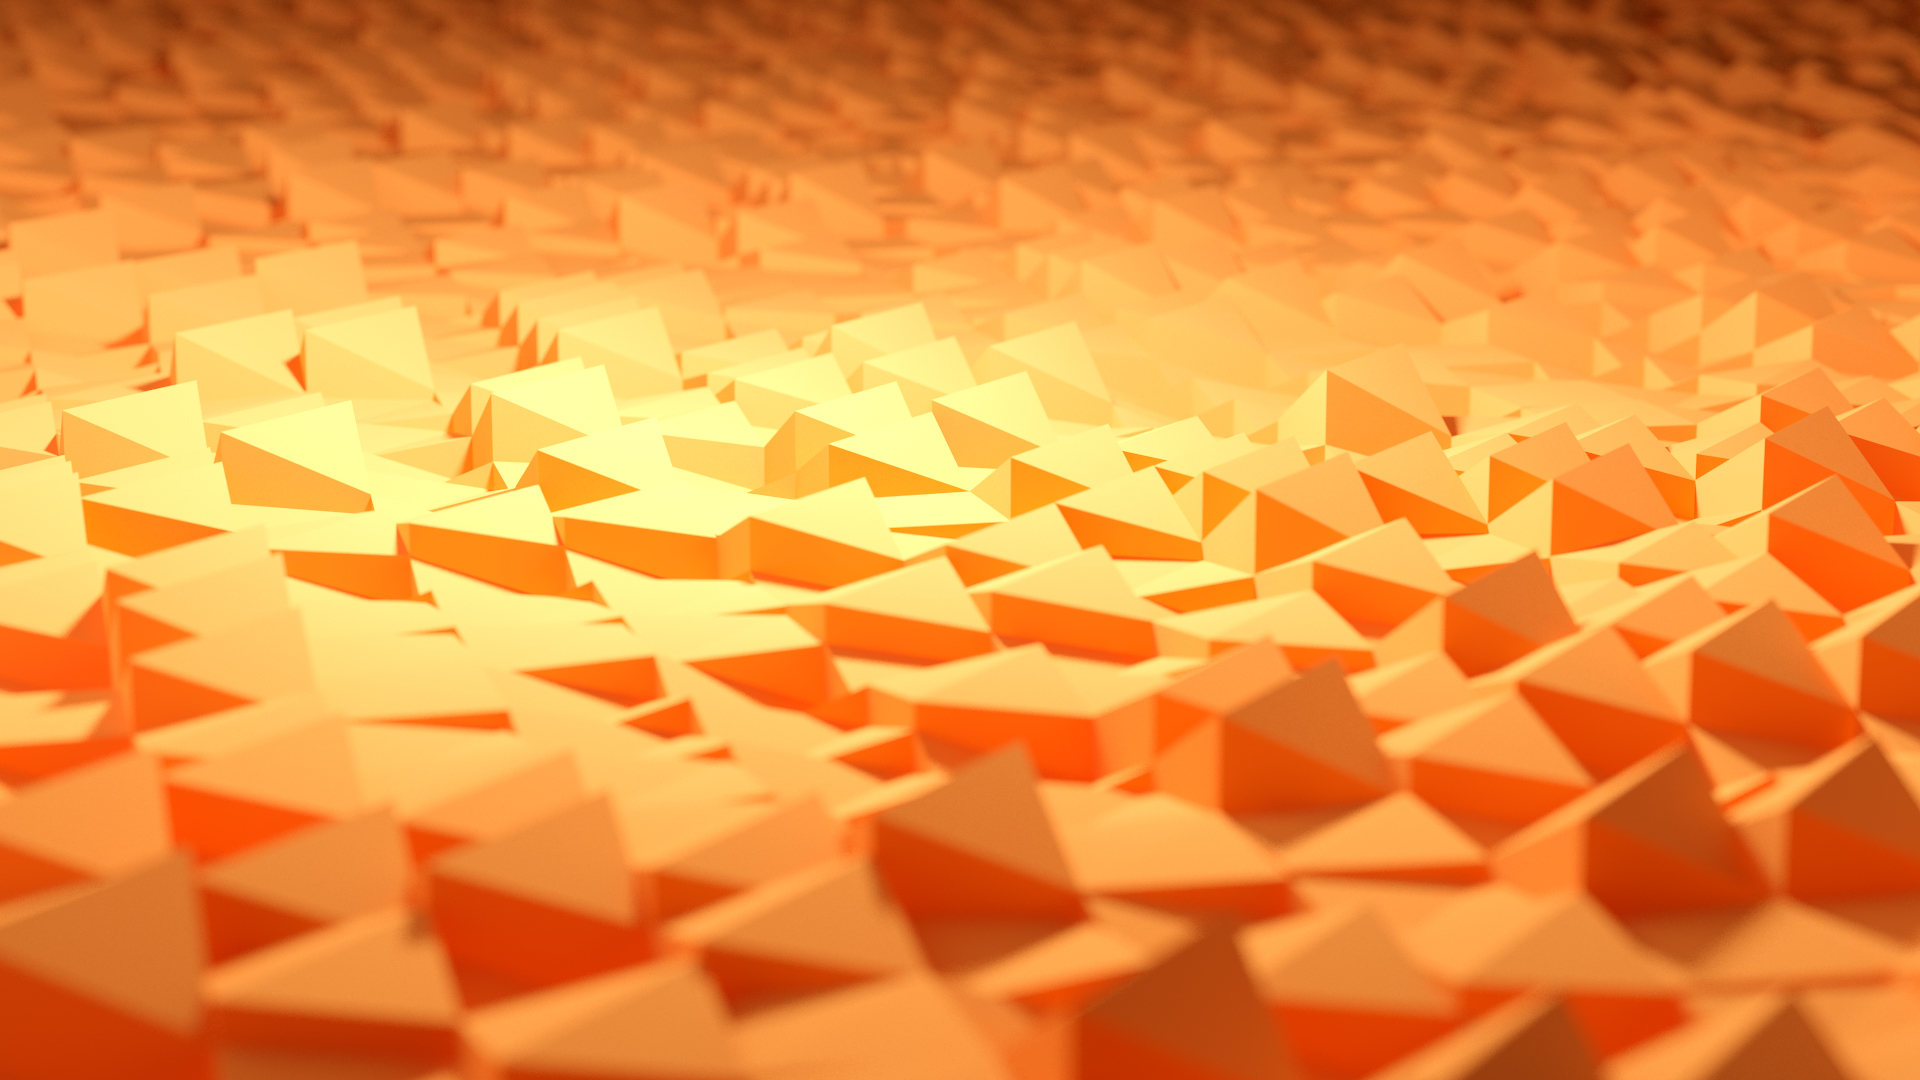 download desktop orange geometric wallpaper desktop orange 1920x1080